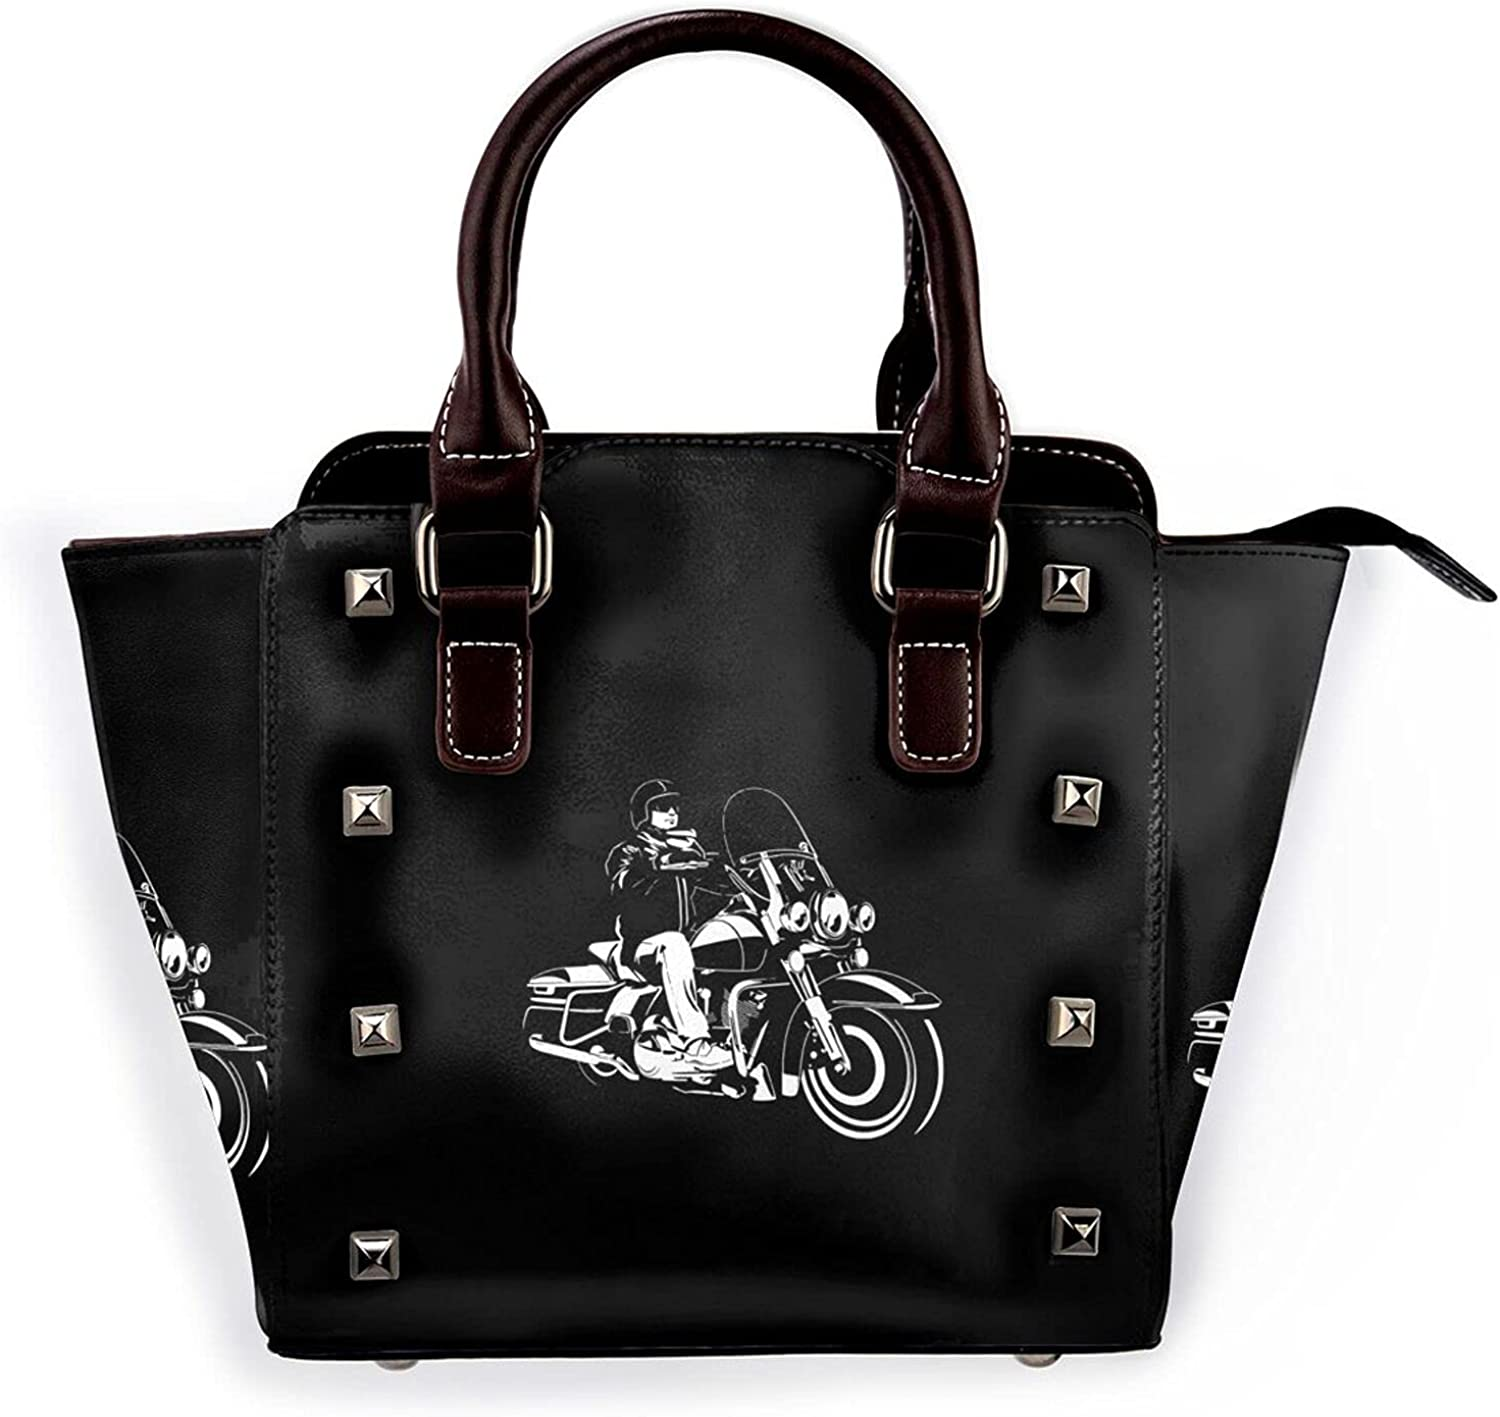 Motorcycle Club Stylish Genuine leather studded shoulder for women on business, work or travel.